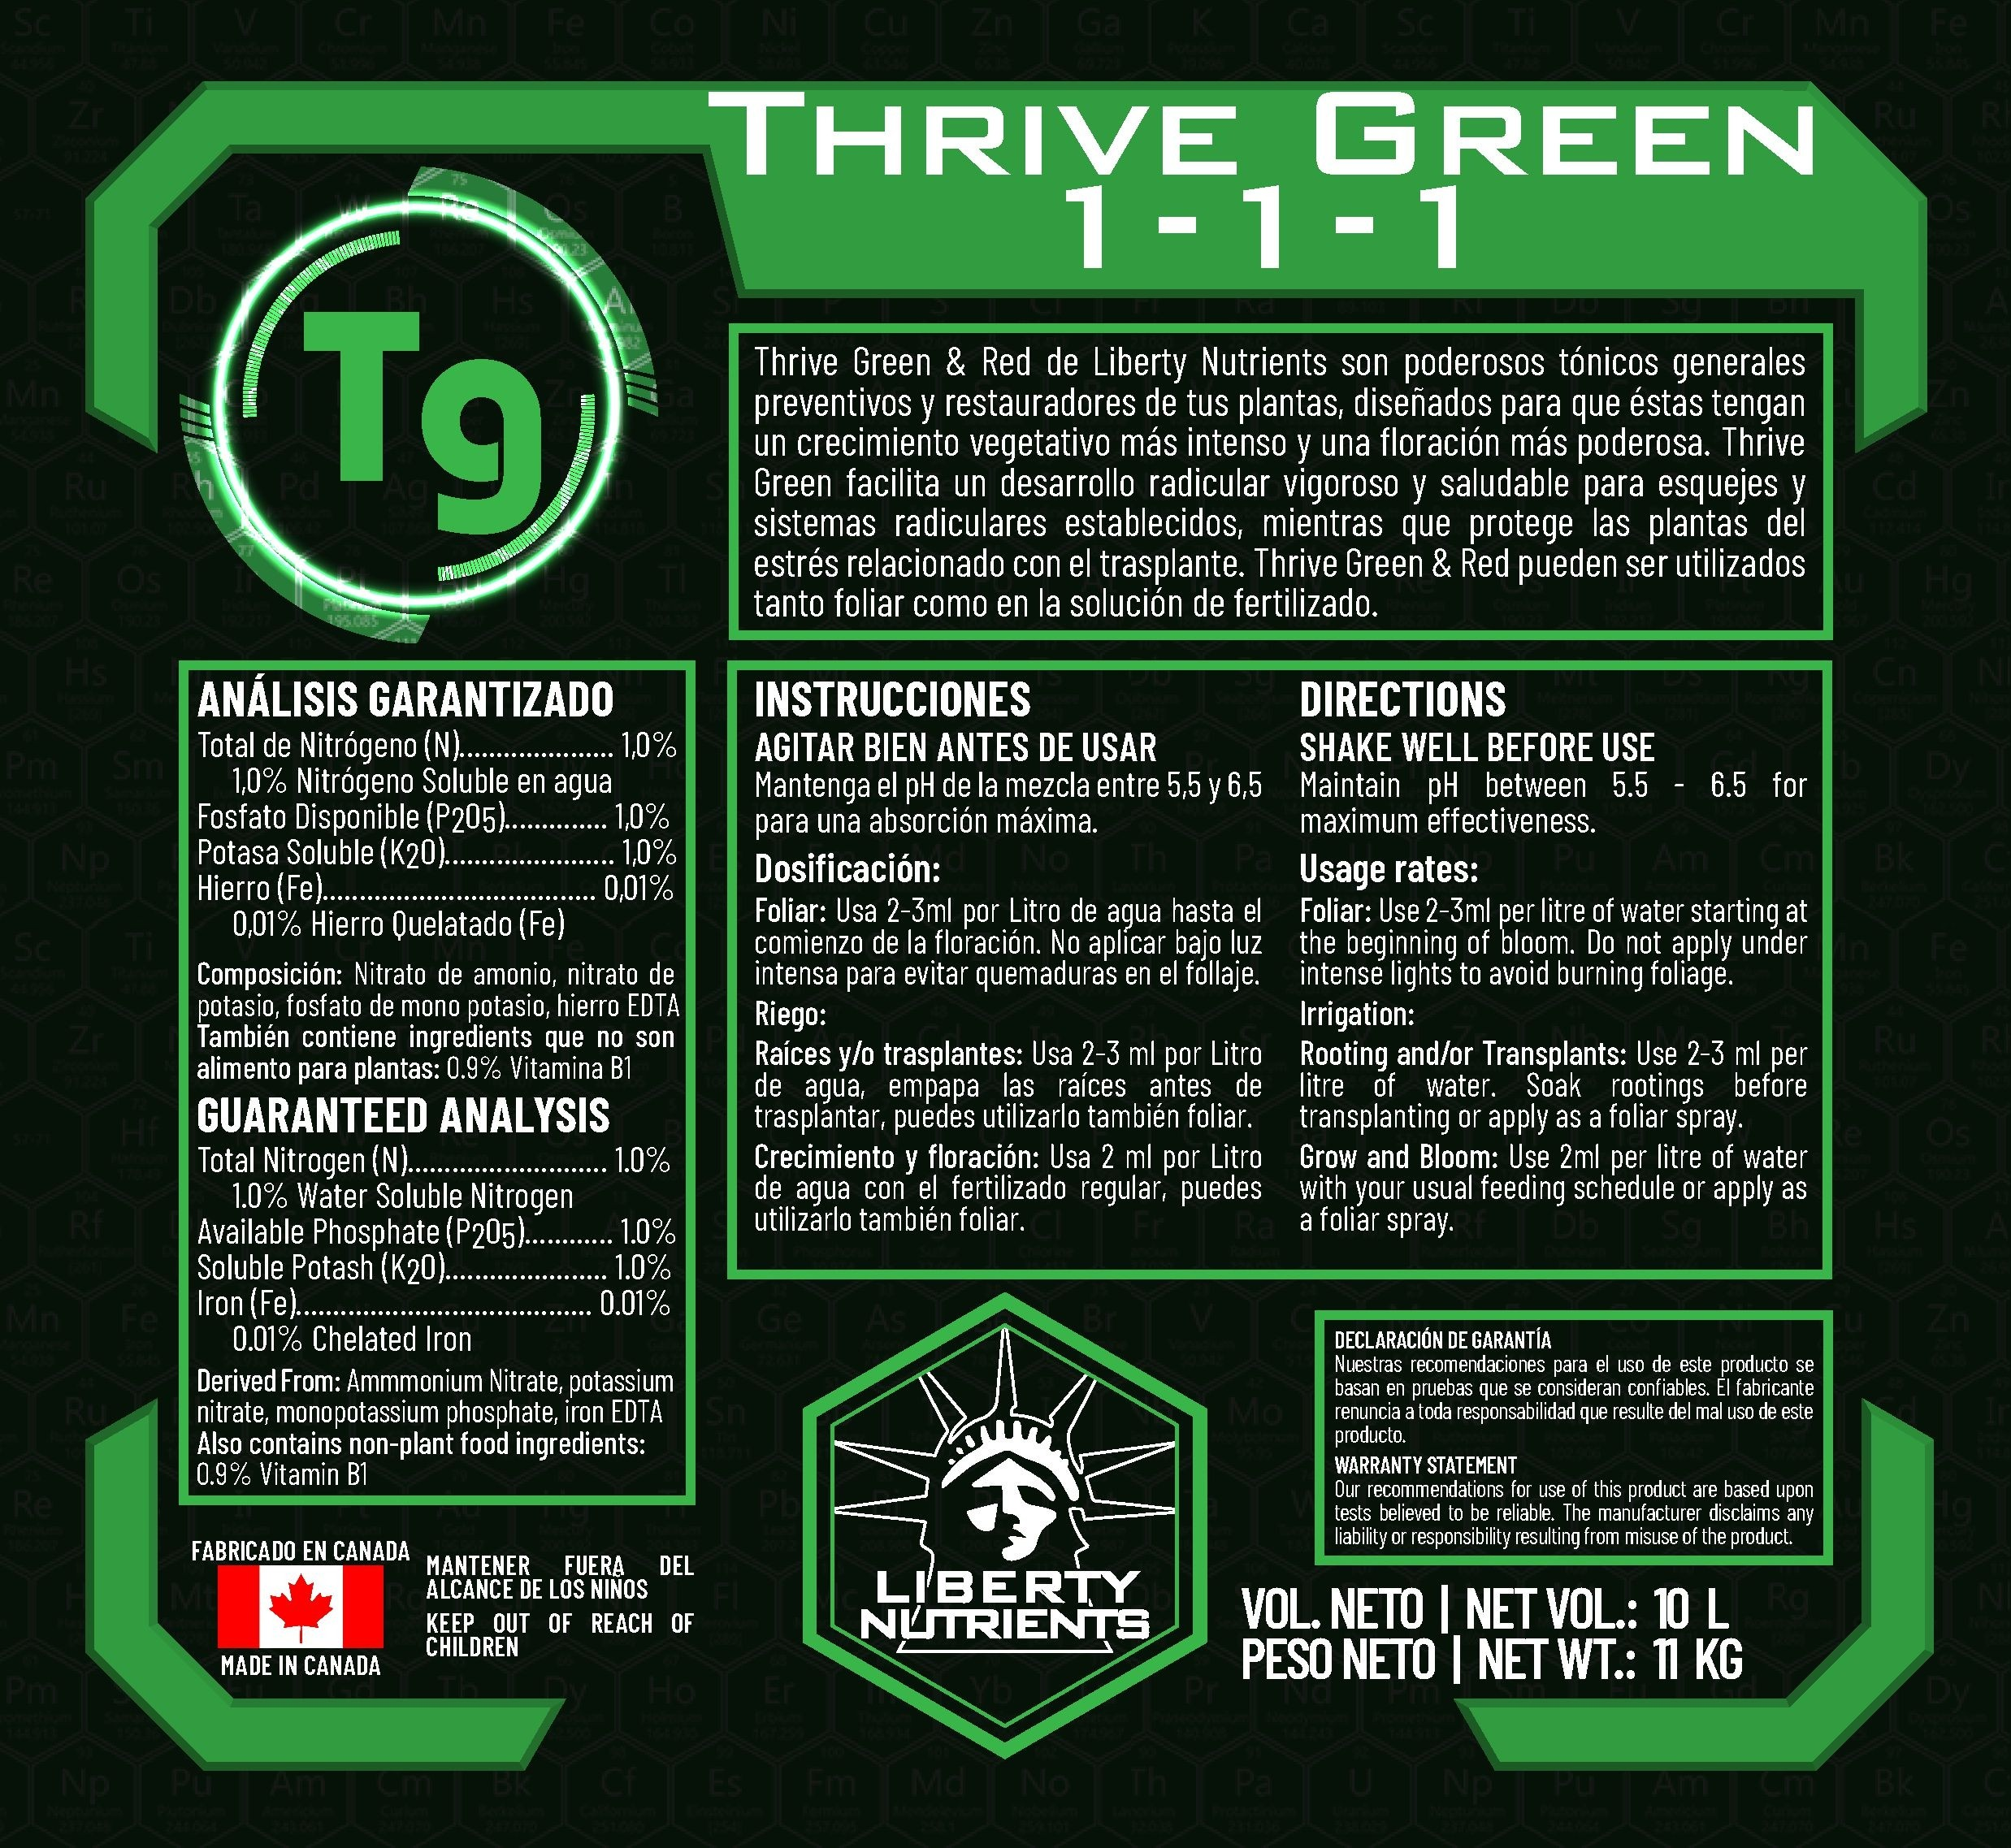 Thrive Drive Green - Liberty Nutrients